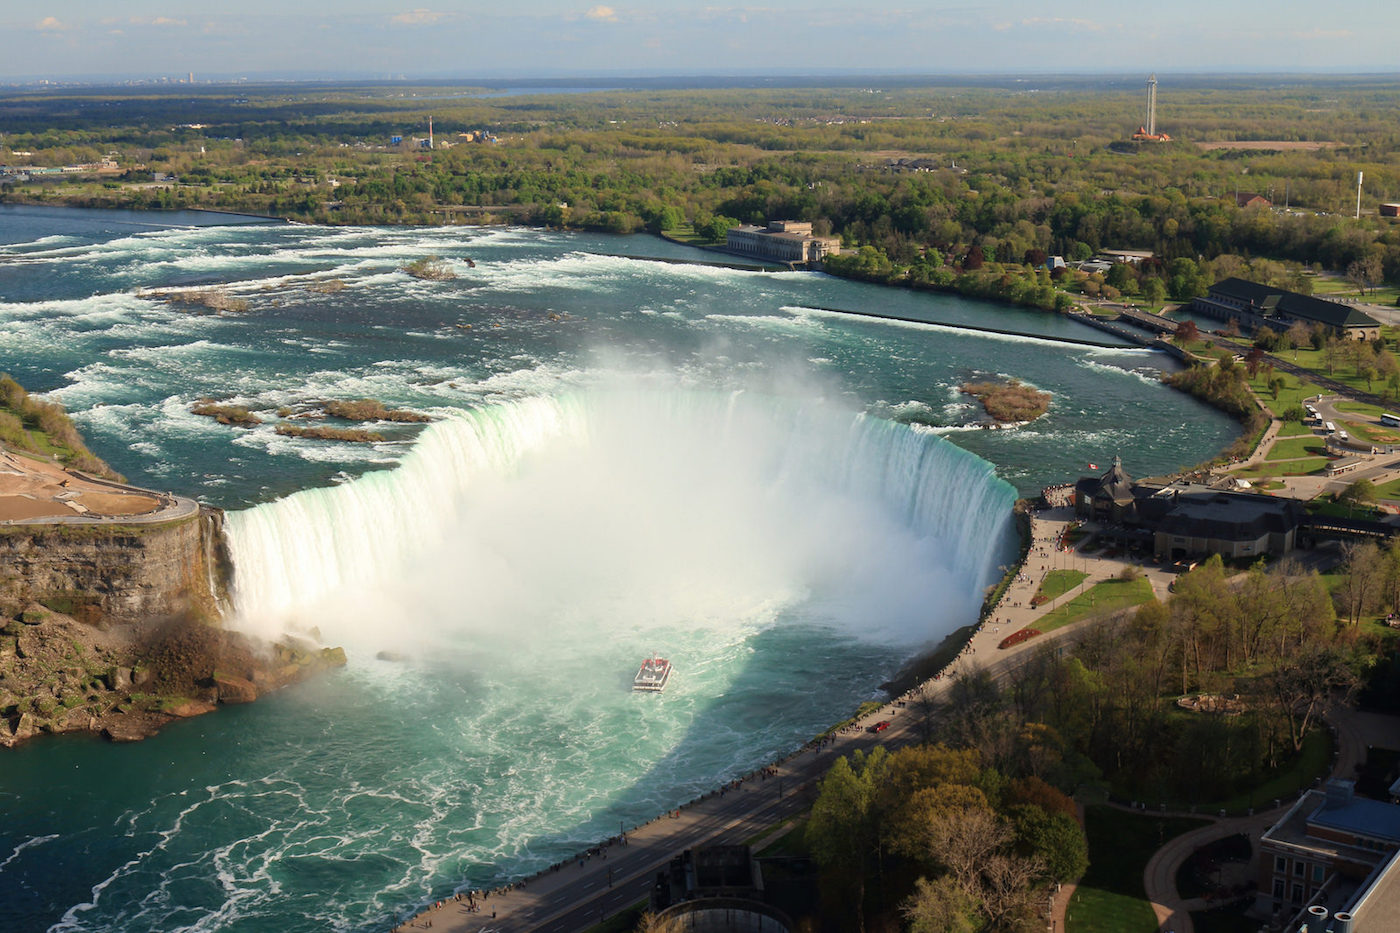 niagara falls views from the skylon tower skyrisecities the horseshoe falls from the skylon tower image by flickr user alexis lewis via creative commons